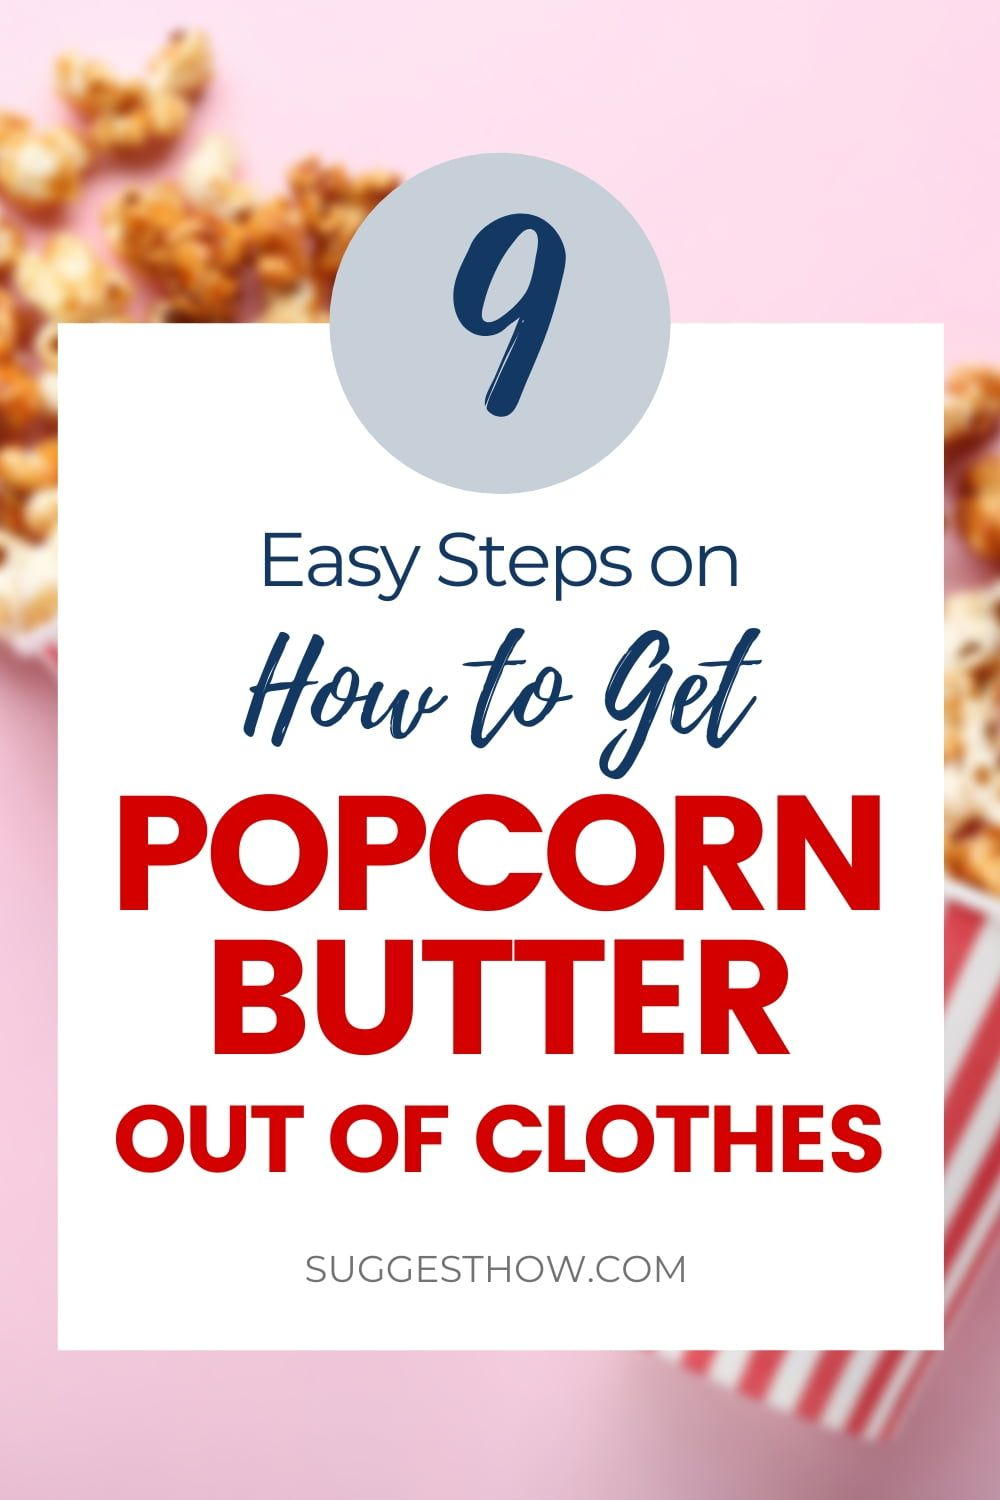 d3238921d60164f0cabe1c74dcb60ca1 - How To Get Popcorn Butter Stains Out Of Clothes